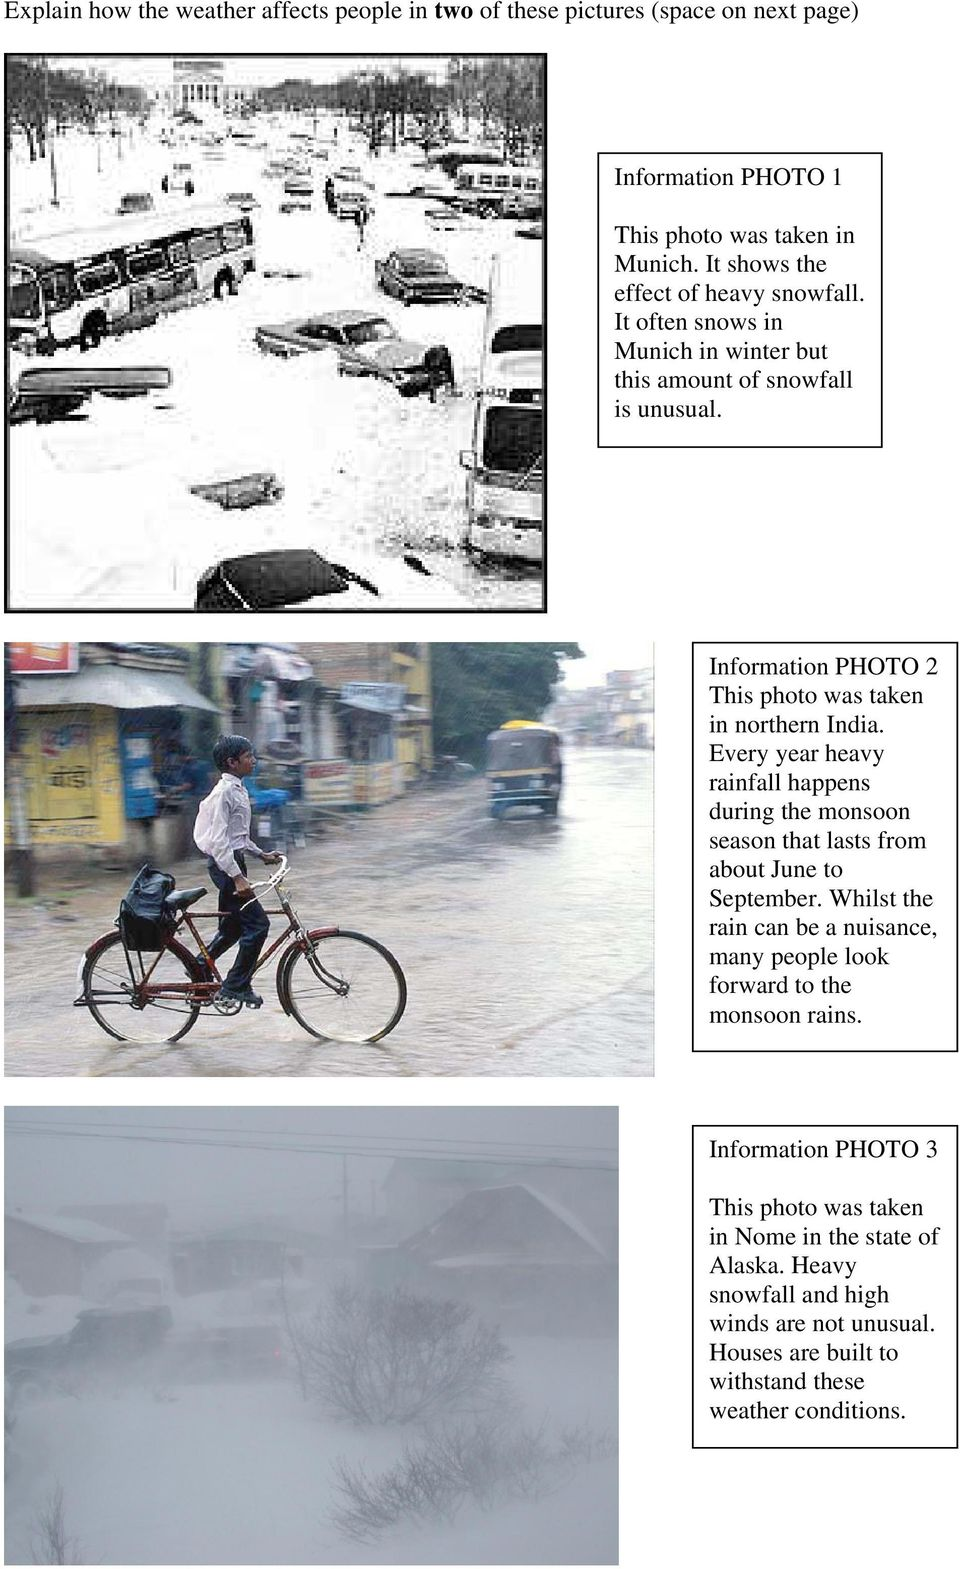 Information PHOTO 2 This photo was taken in northern India. Every year heavy rainfall happens during the monsoon season that lasts from about June to September.